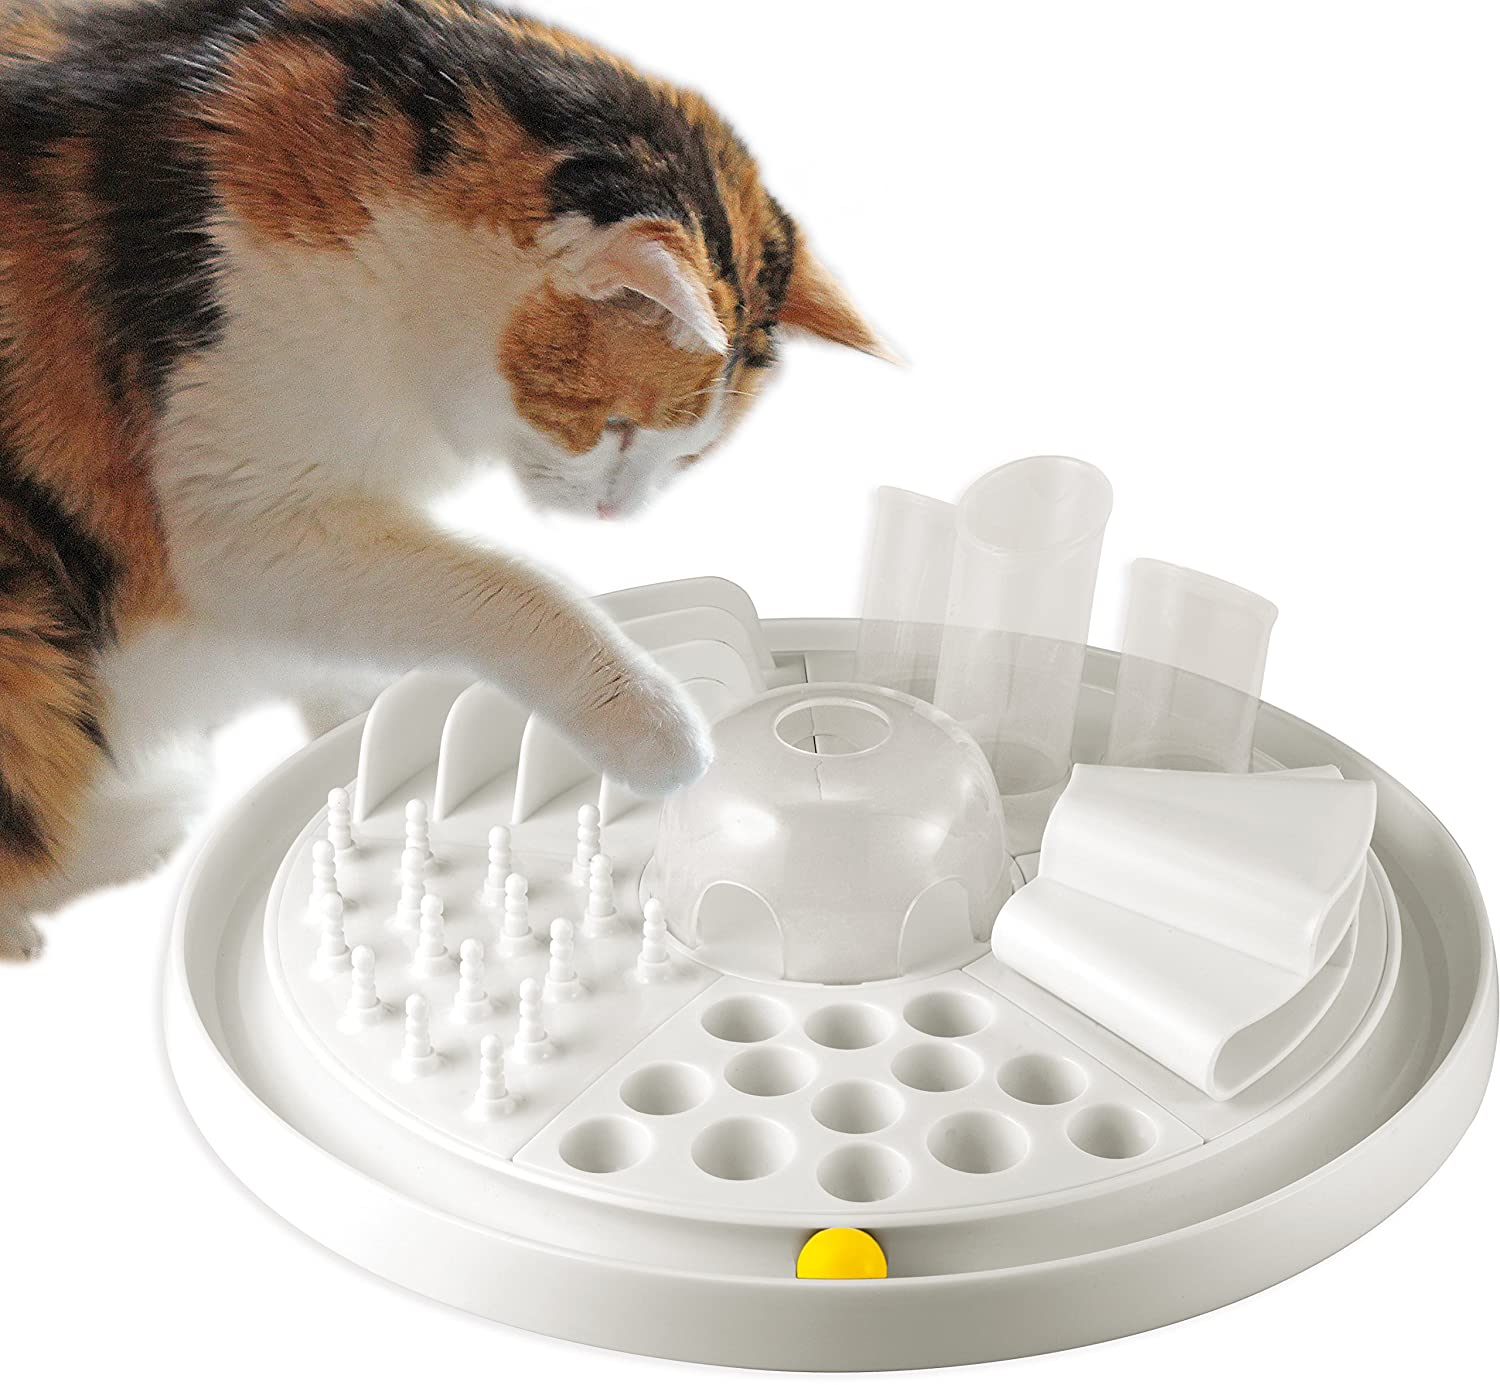 maze non feed food feeder stop bowl interactive cat chew skid toy dog com slow fun pet puzzle bloat amazon dp christmas arkeban water